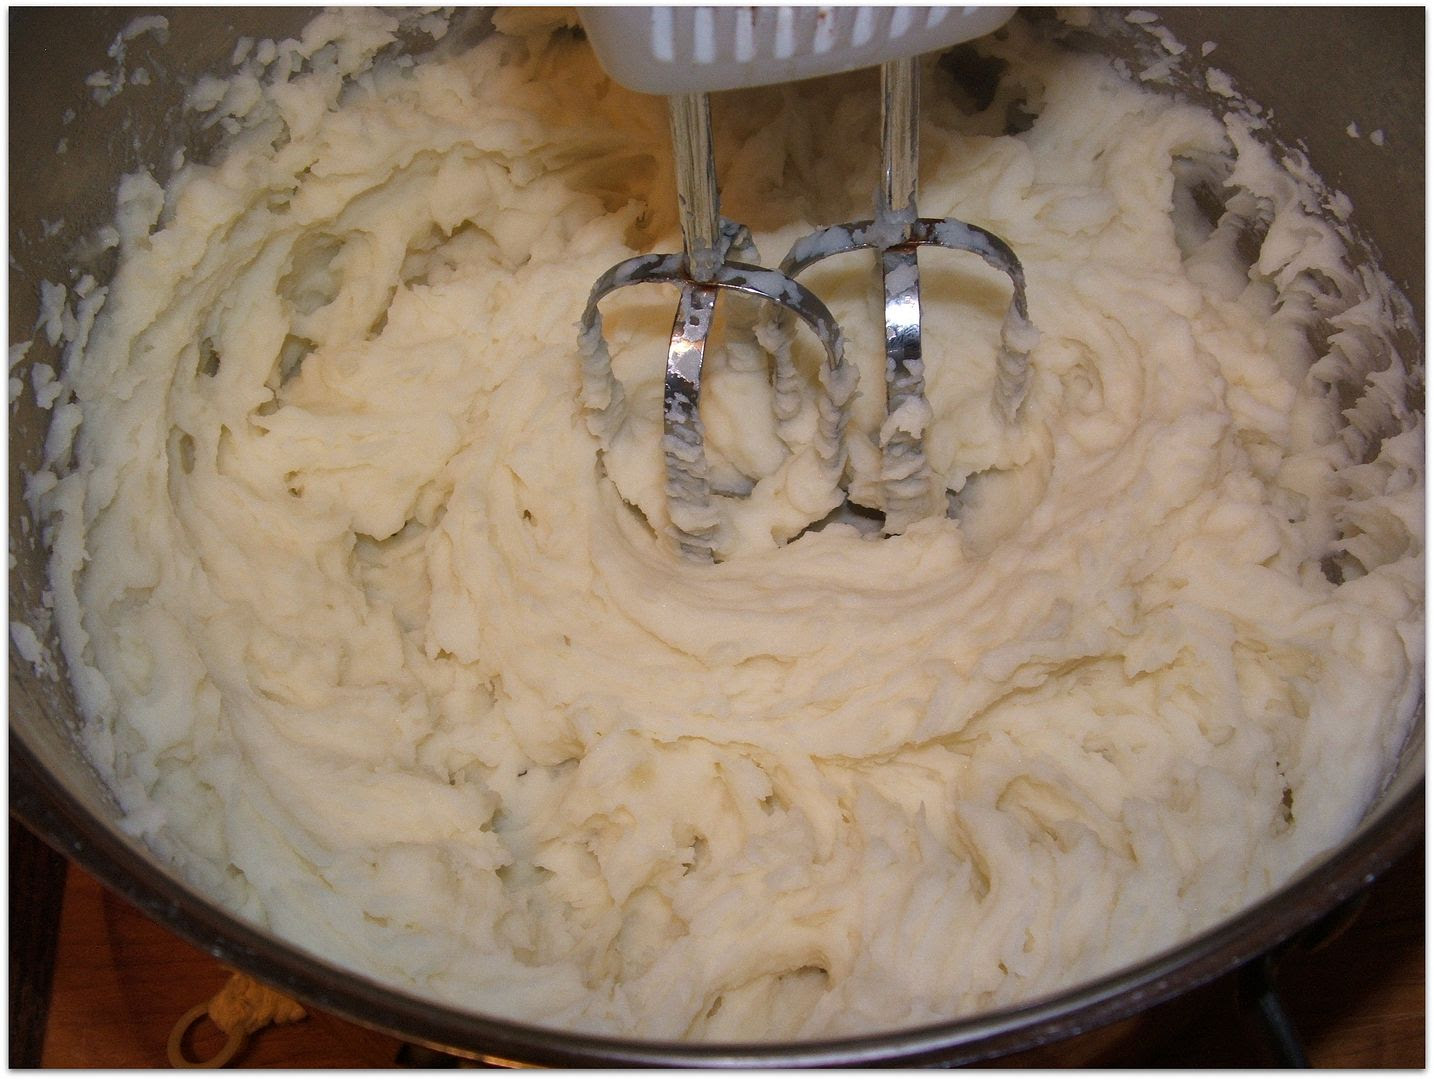 Real Mashed Potatoes by Angie Ouellette-Tower for godsgrowinggarden.com photo 010_zps553e9bfc.jpg